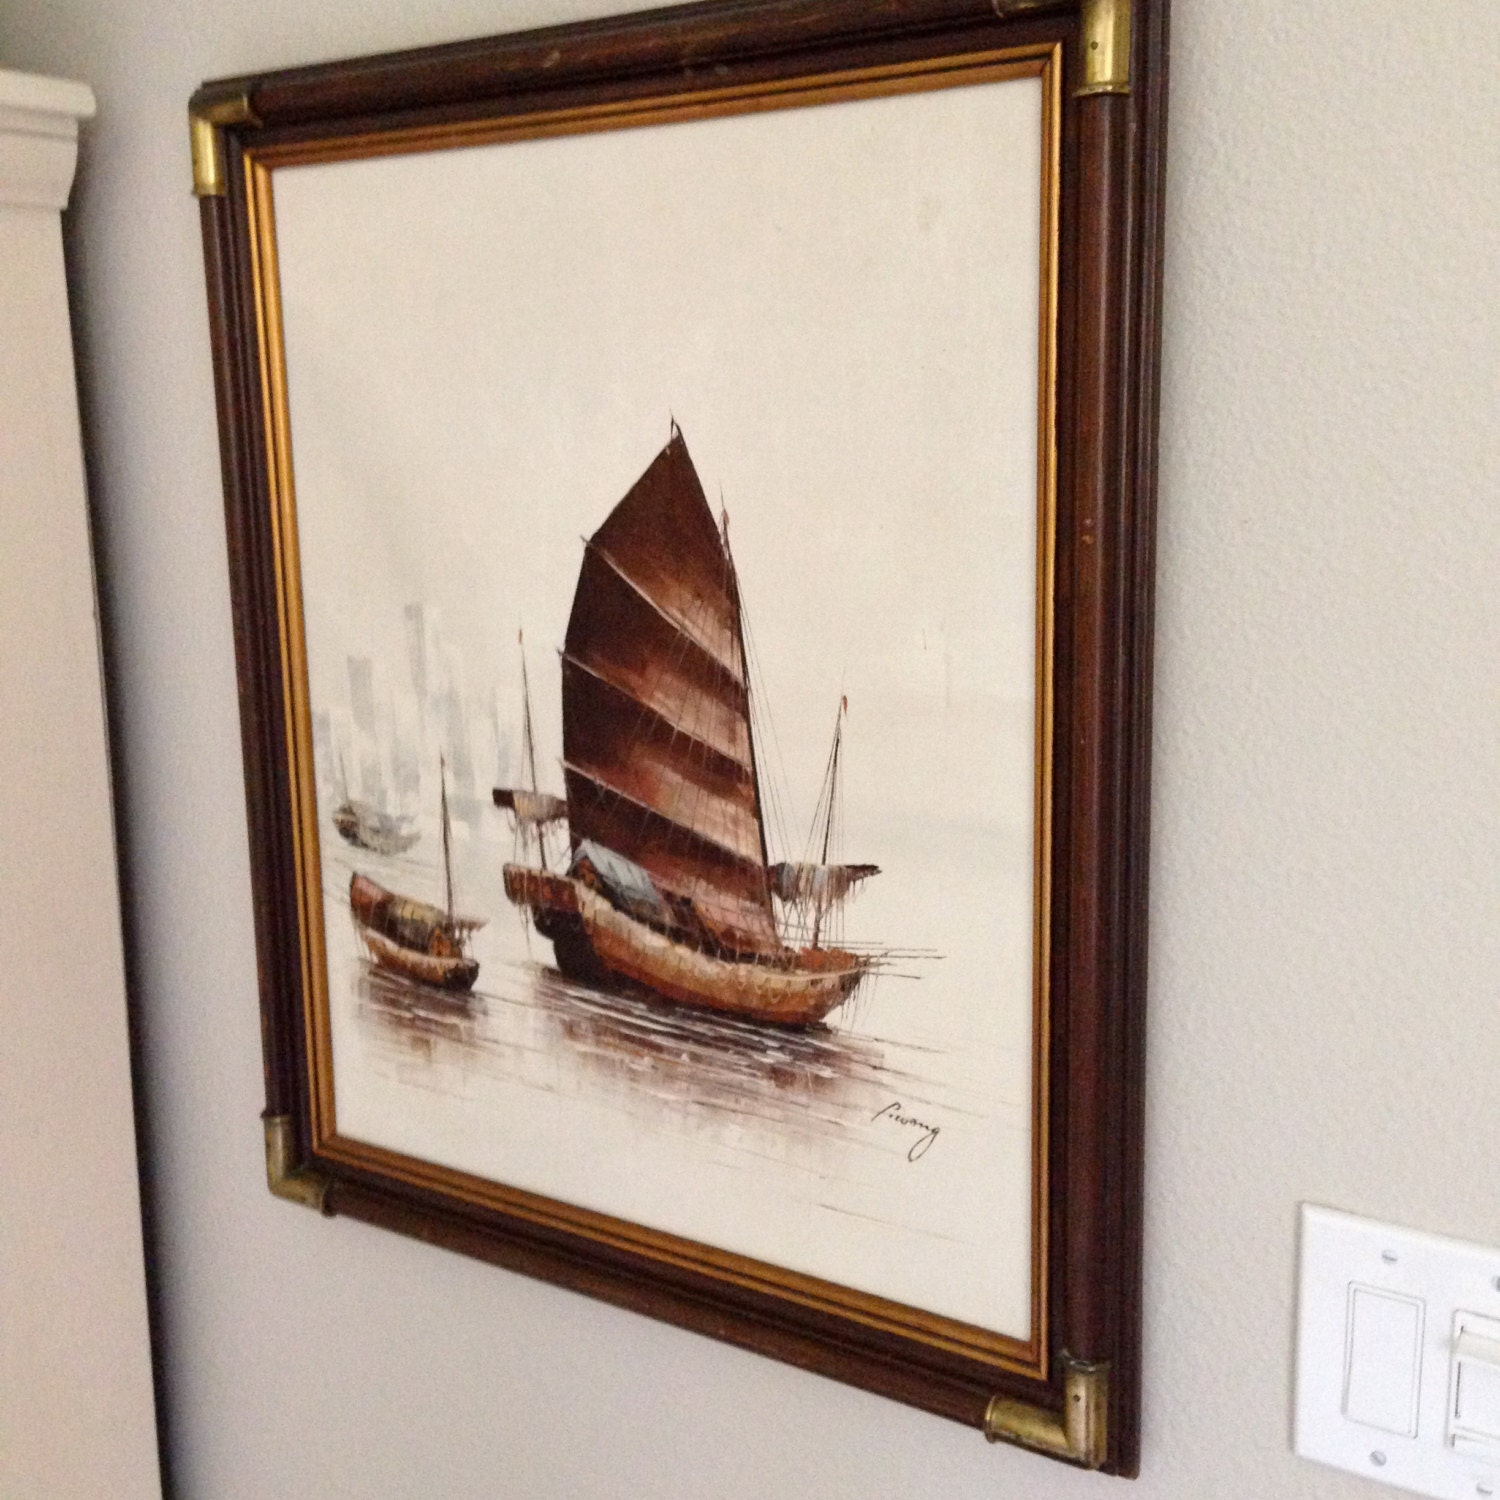 P. Wong Oil Painting Junk Boats Signed Artistic Interiors